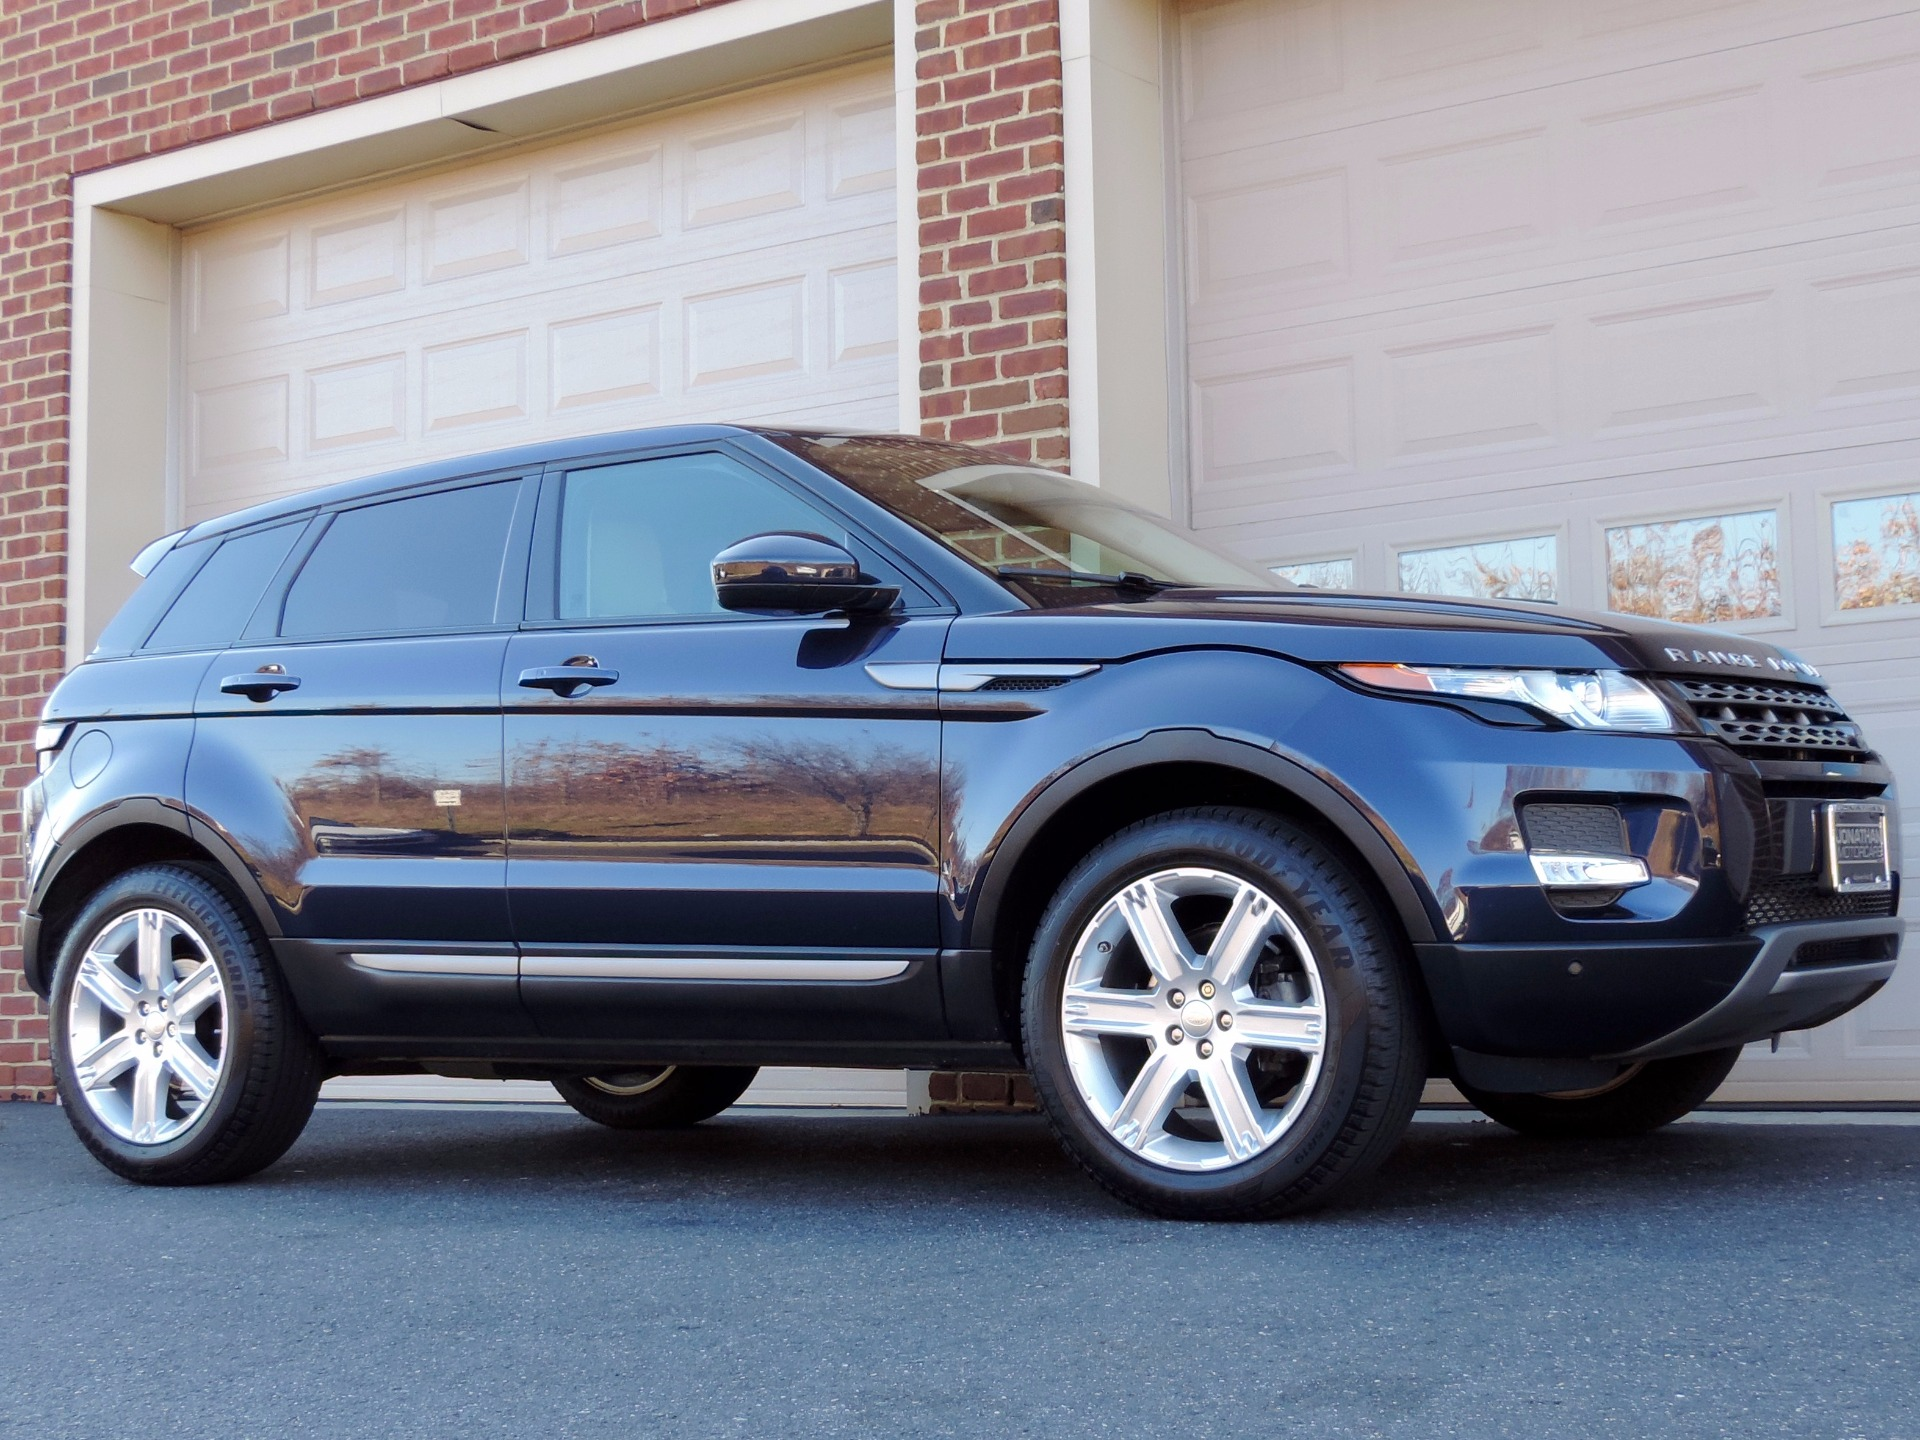 2015 land rover range rover evoque pure plus stock 027954 for sale near edgewater park nj. Black Bedroom Furniture Sets. Home Design Ideas